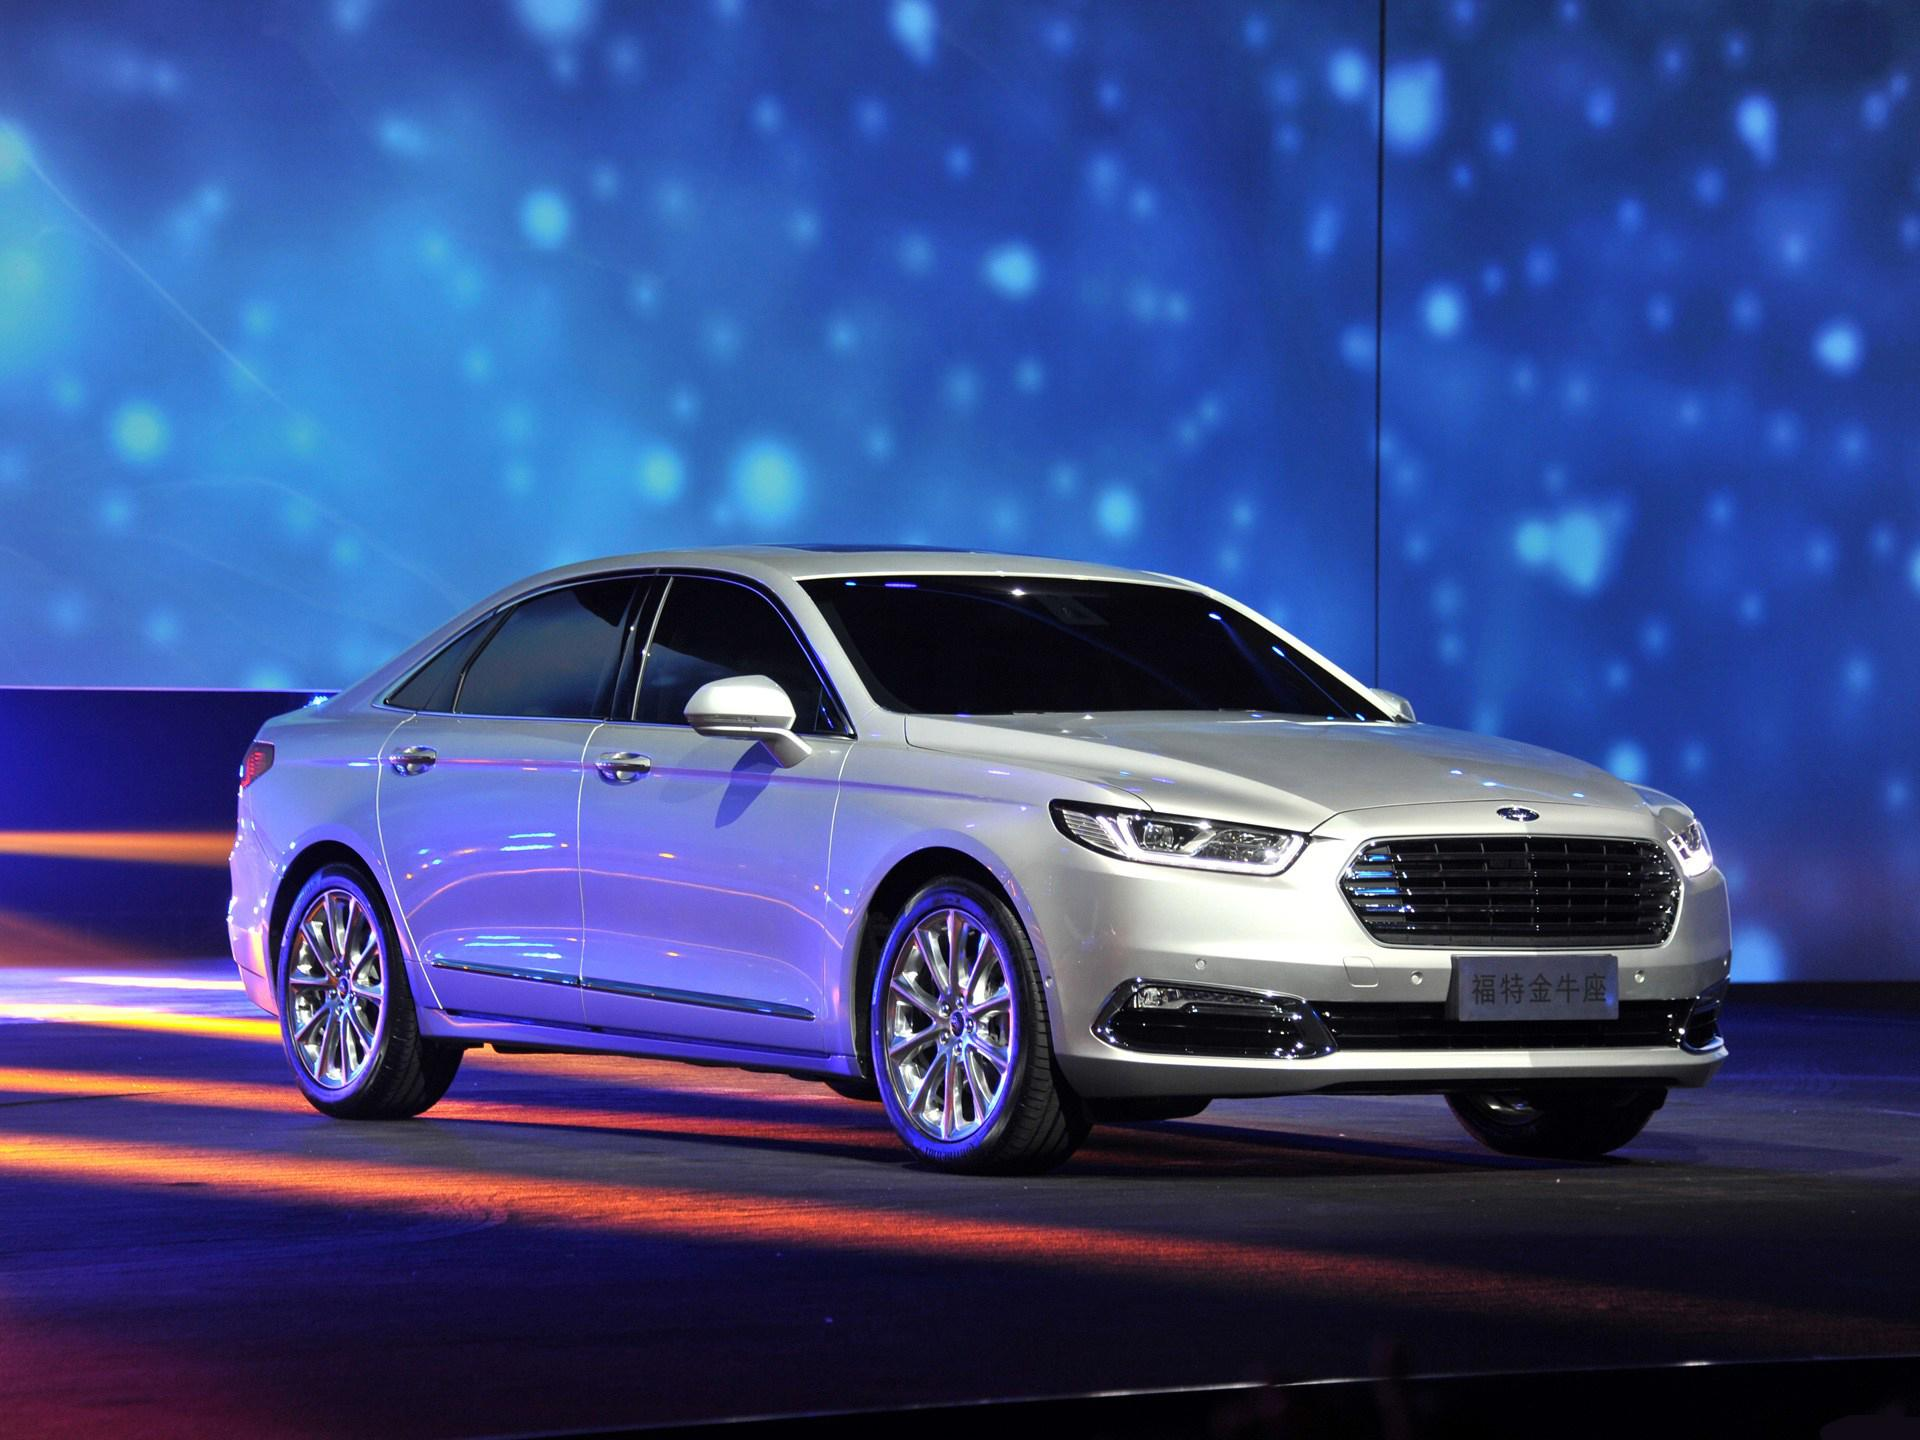 2017 Ford Fusion 2 0 Ecoboost >> Exclusive: More Details about the 2016 Ford Taurus - YouWheel.com - Your Ultimate and ...